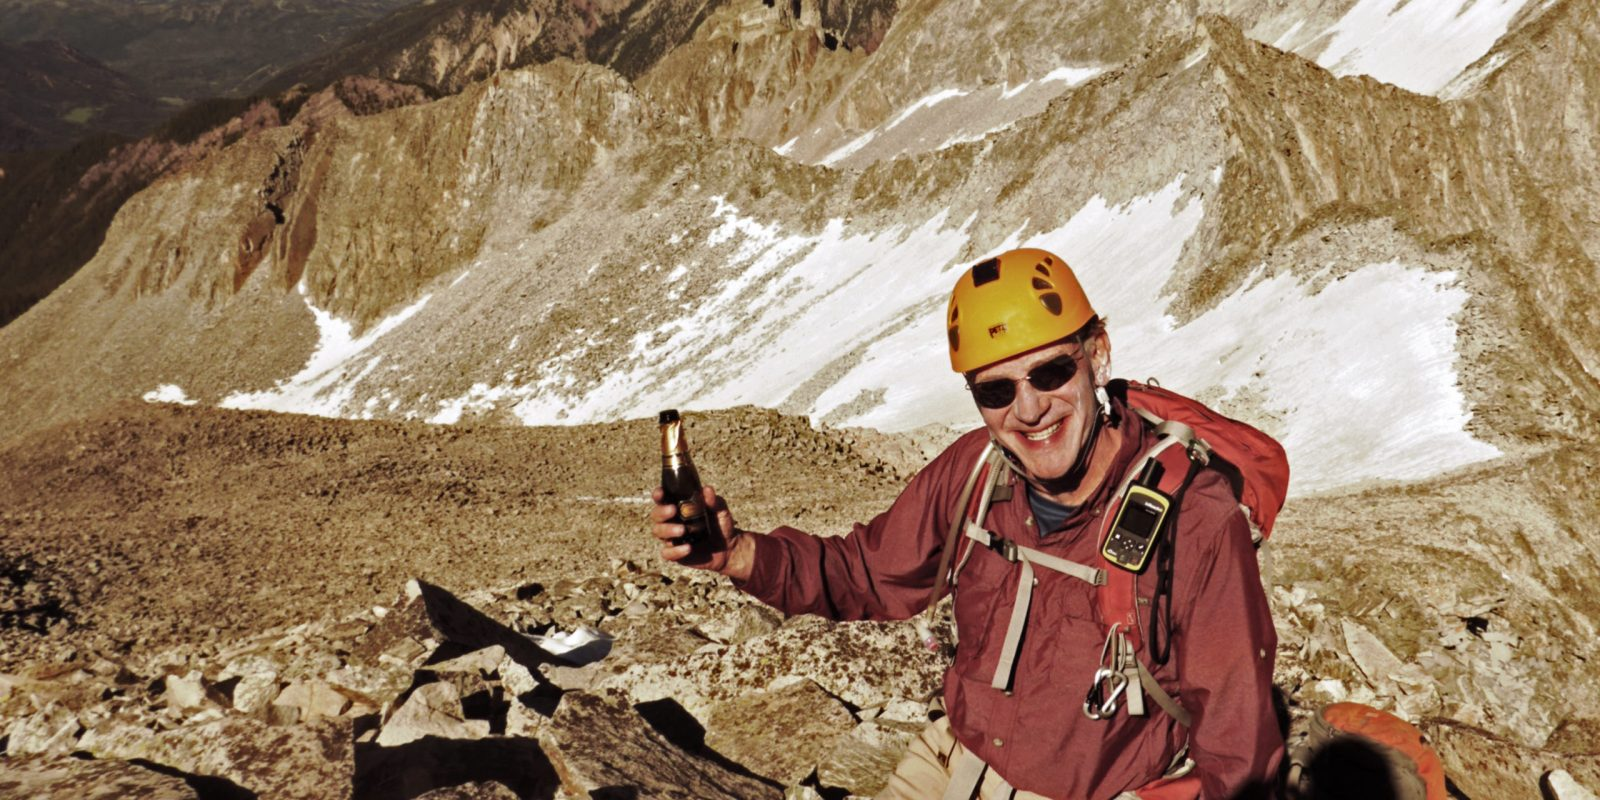 Rick Crandall enjoying a split of Prosecco after descending the most difficult part of a mountain trail